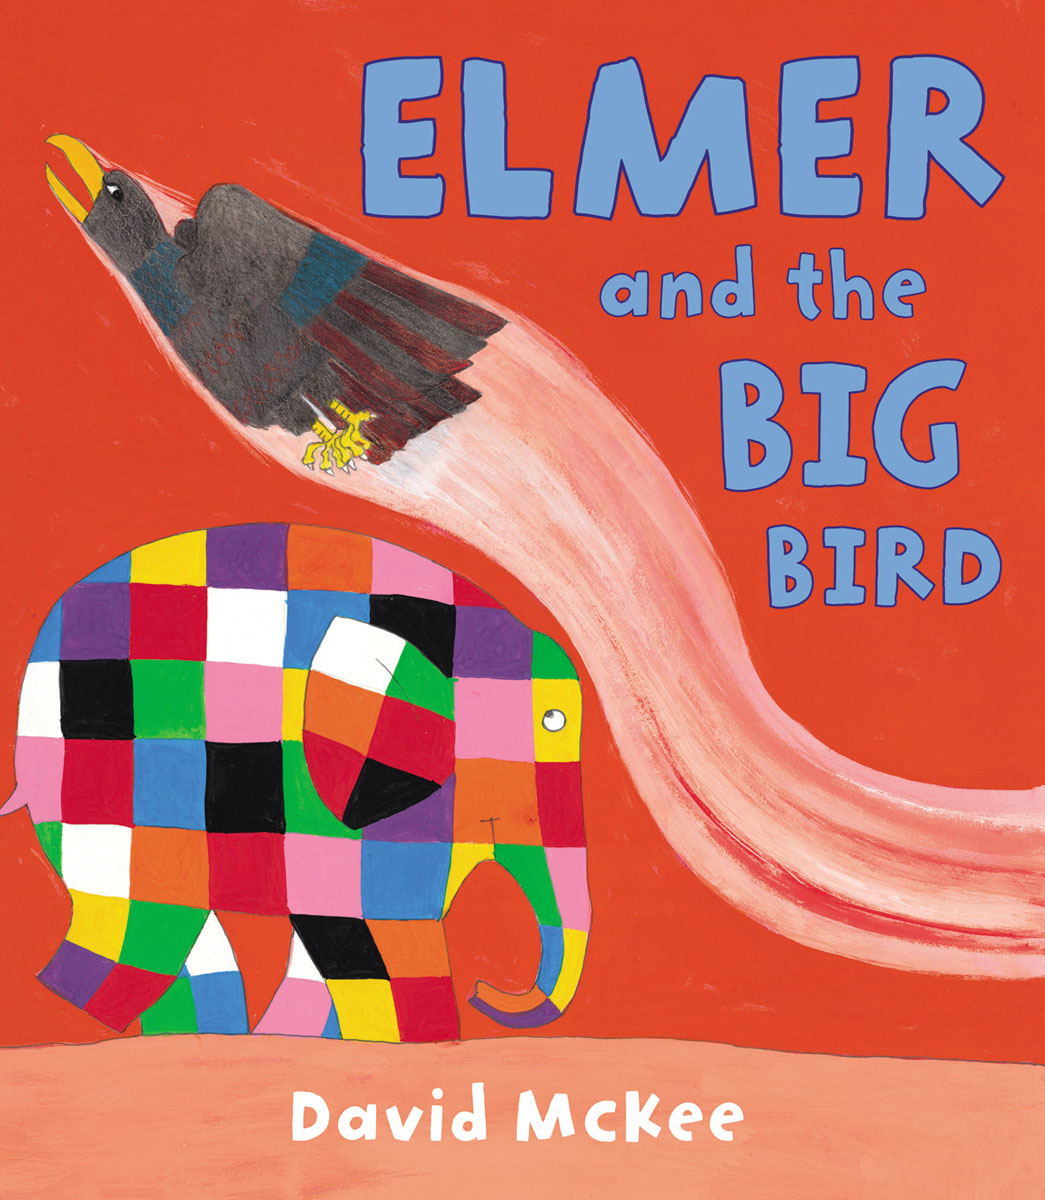 Elmer and the Big Bird elmer in the snow